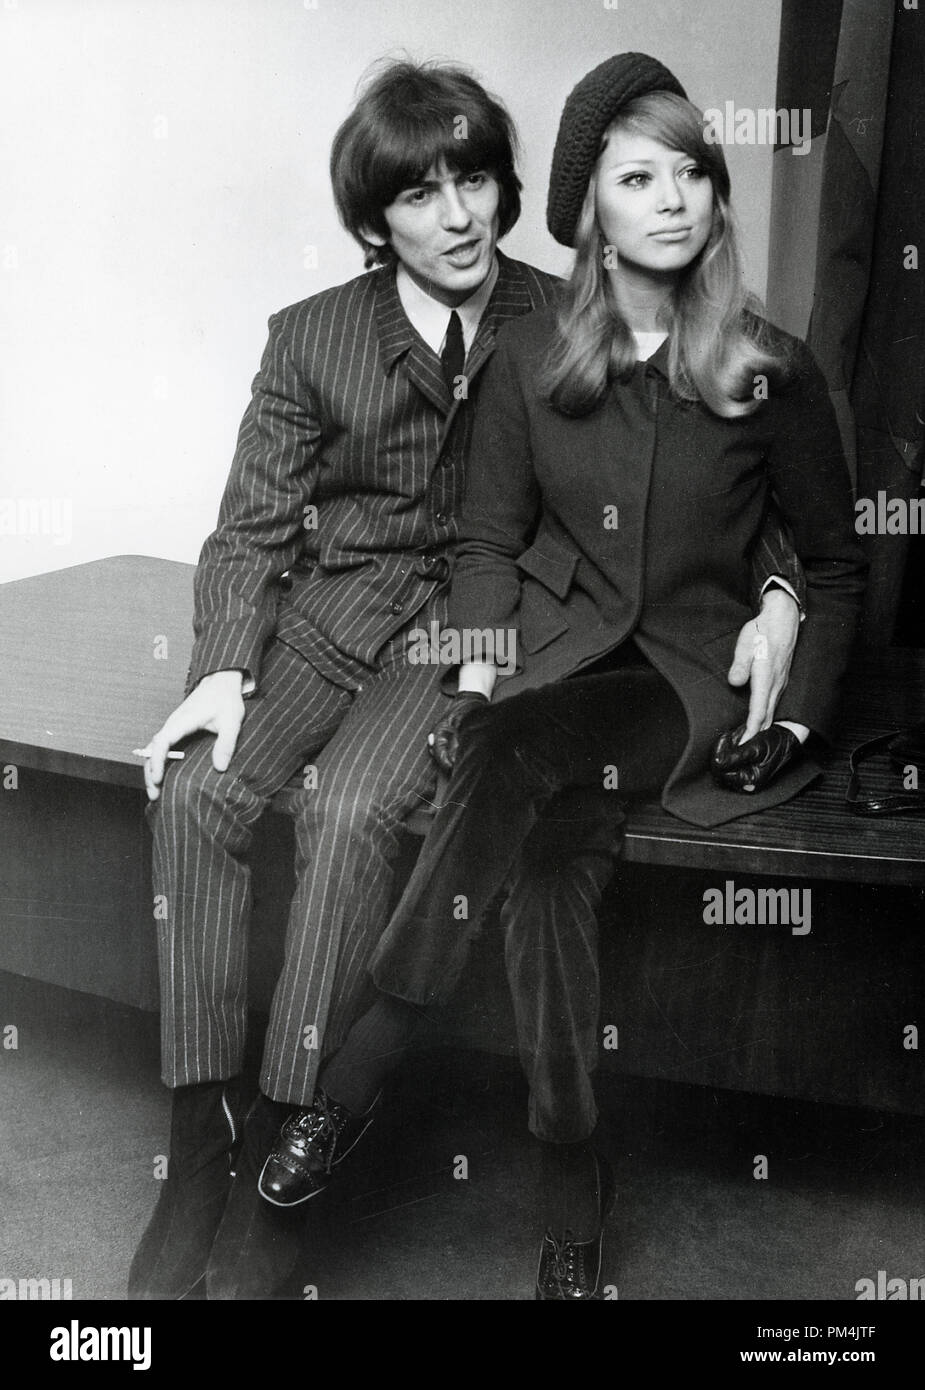 Newlyweds Beatle George Harrison and Pattie Boyd in London, January 21,1966. File Reference #1013_043 THA © JRC /The Hollywood Archive - All Rights Reserved. - Stock Image